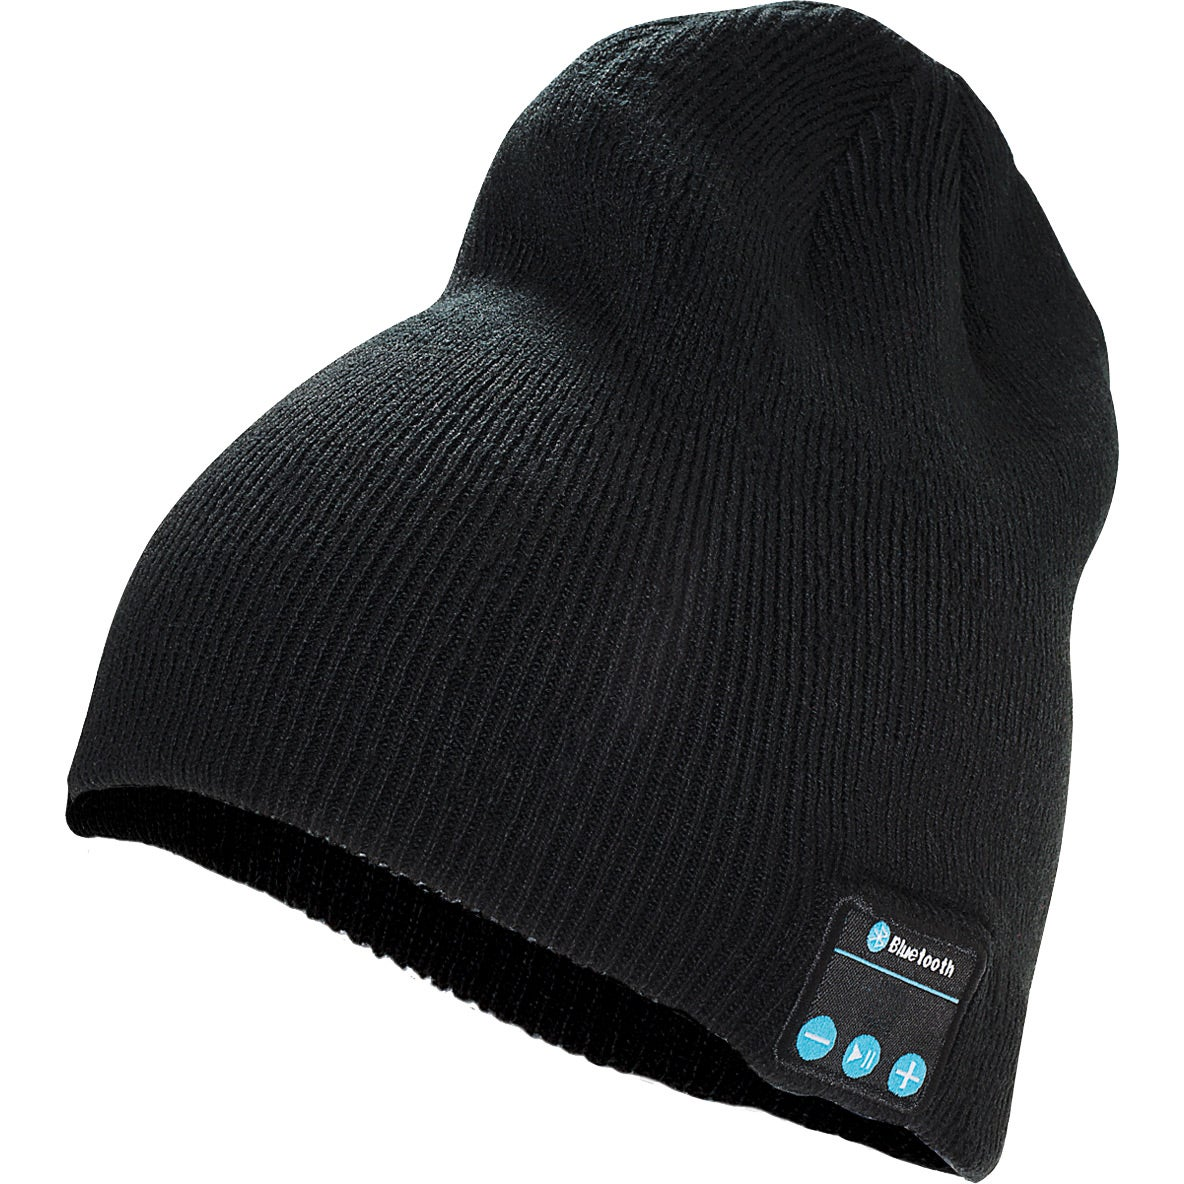 Bluetooth Beanie | Embroidered Beanies and Knit Caps | 13 ...